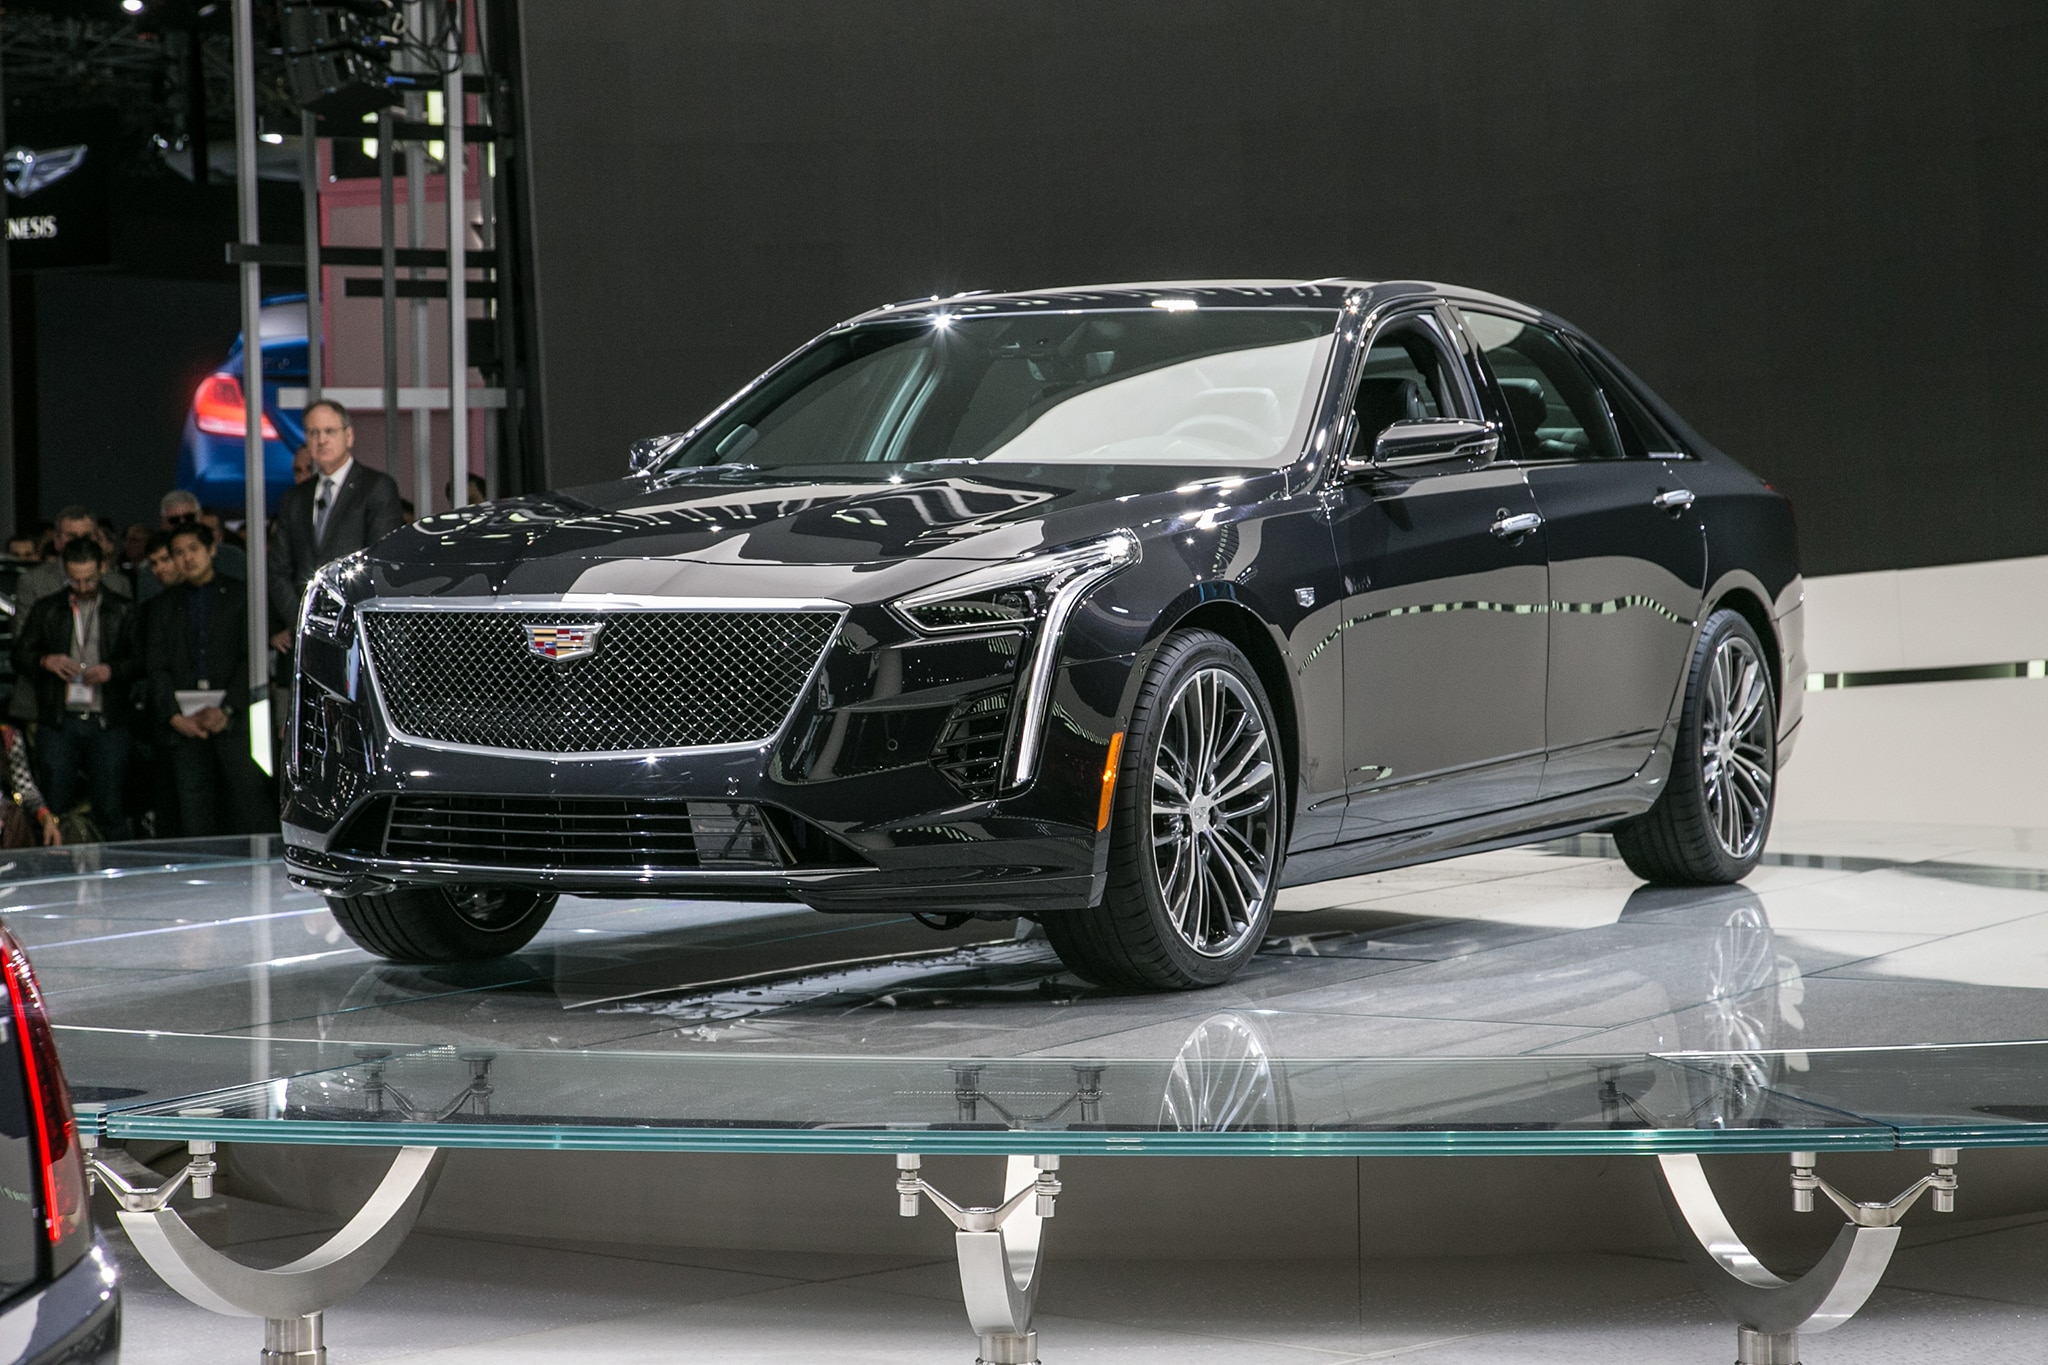 Cadillac Unleashes Its Own V-8 Engine for 2019 CT6 VSport | Automobile Magazine